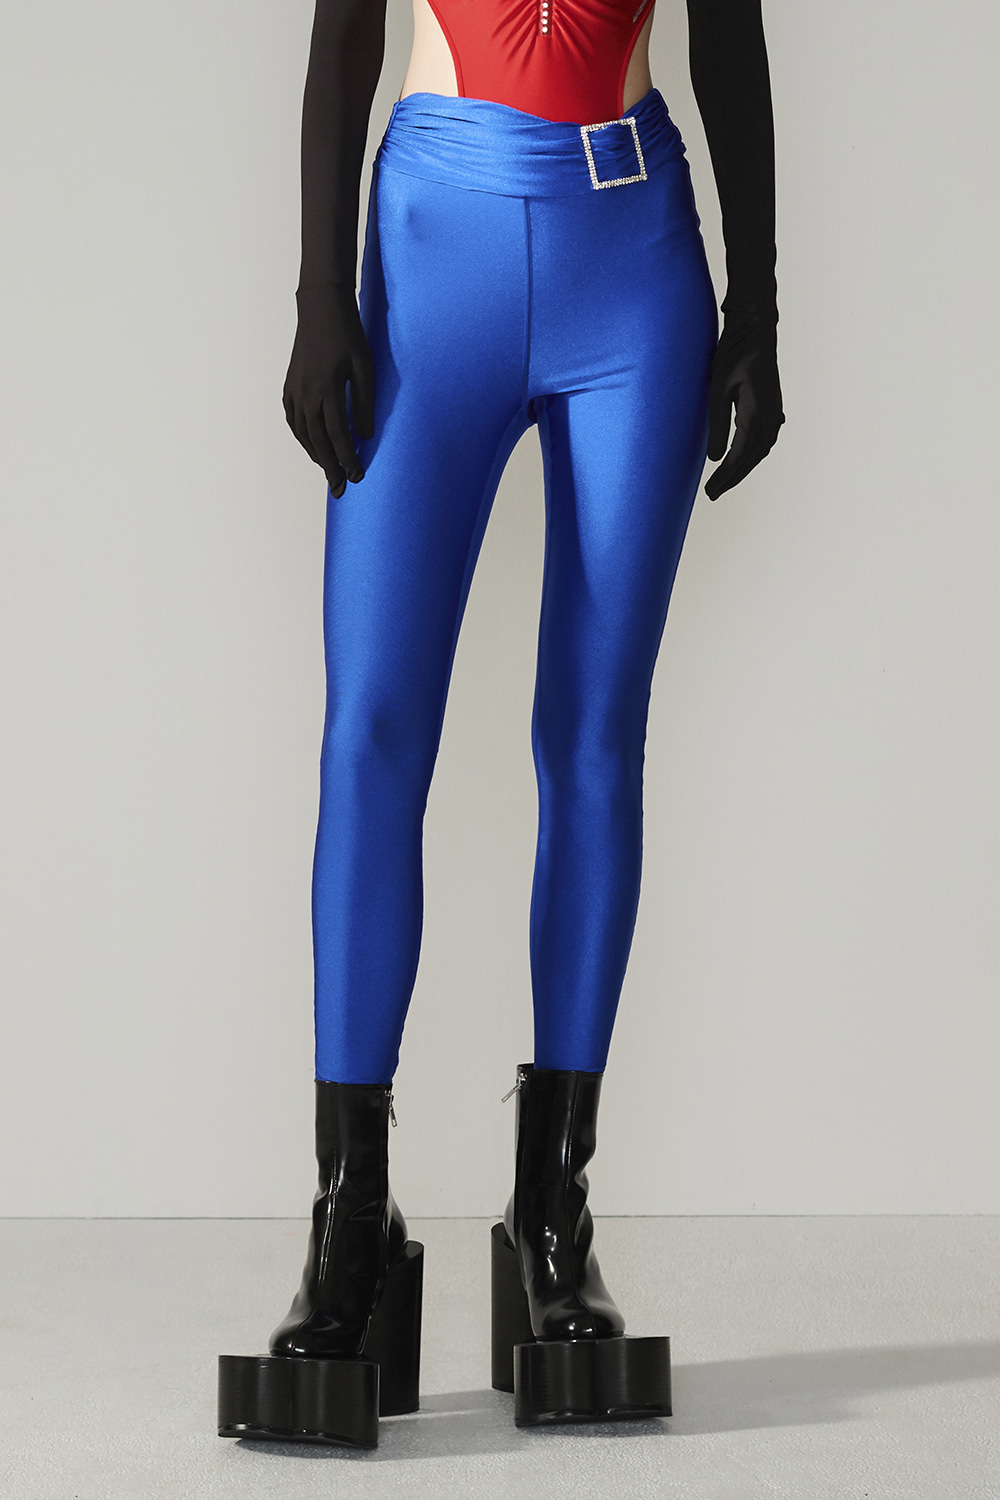 SS21 JEWELLED POINT BLUE LEGGINGS